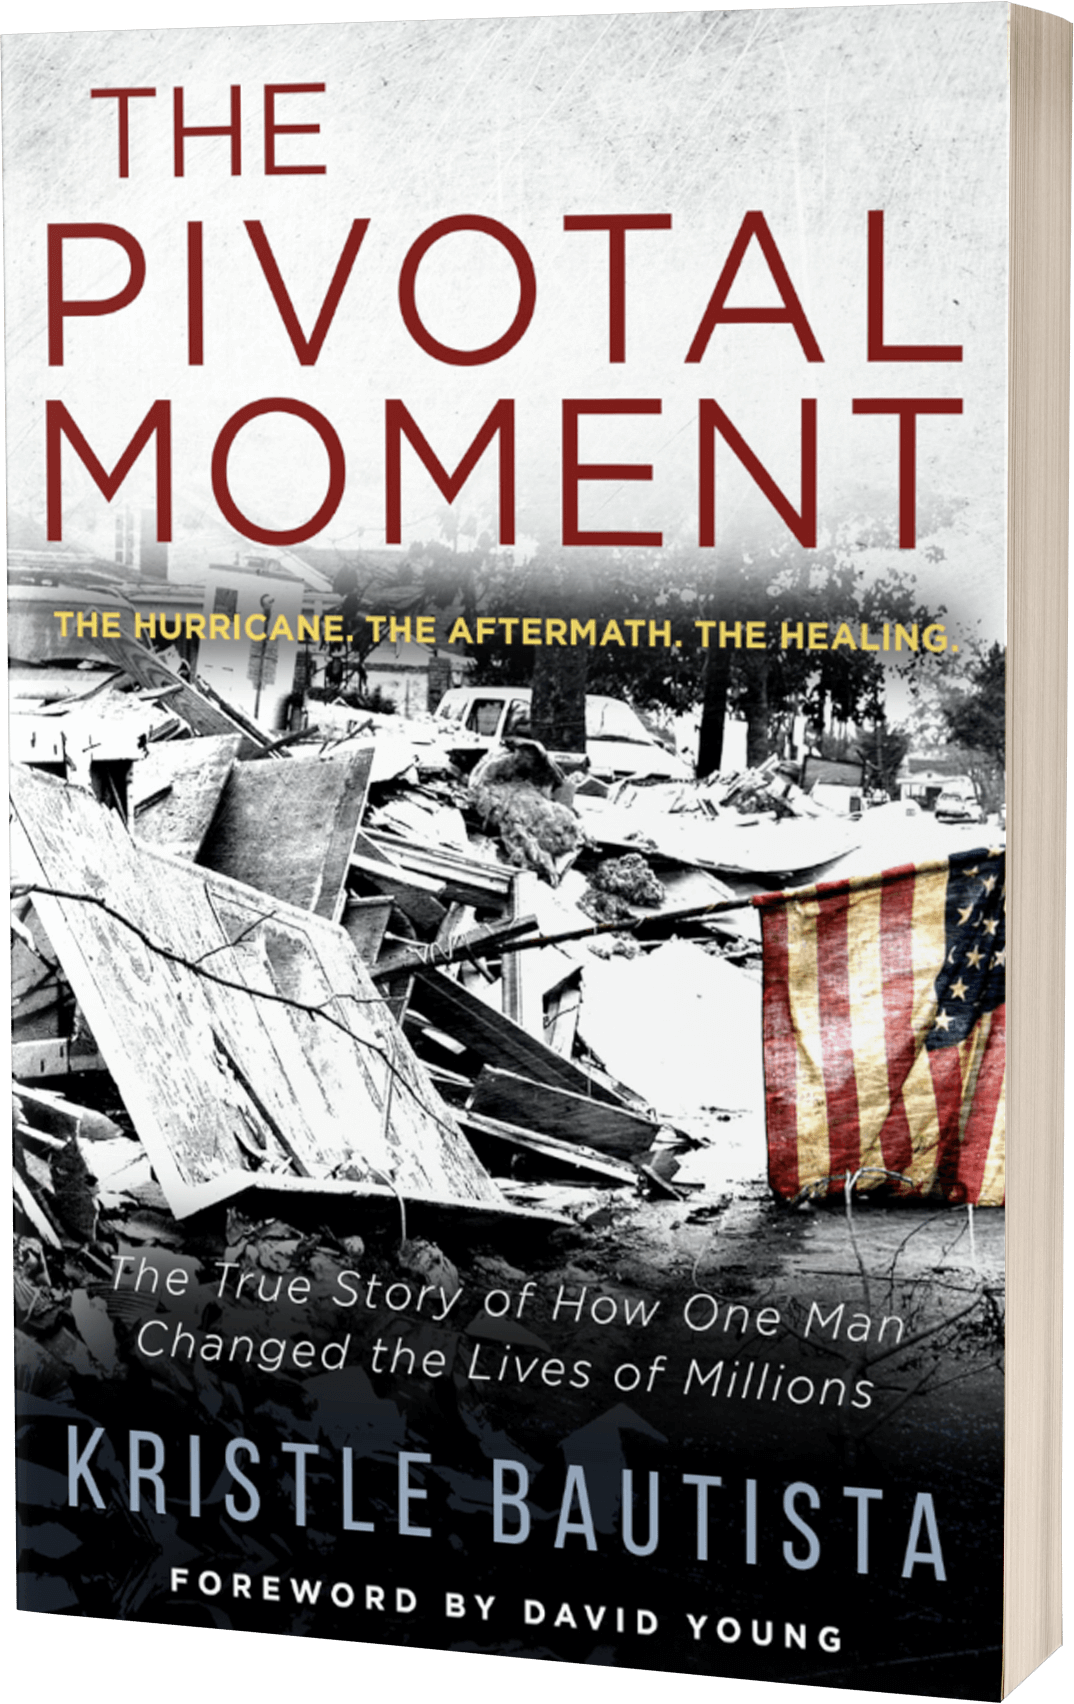 THE PIVOTAL MOMENT Book Cover